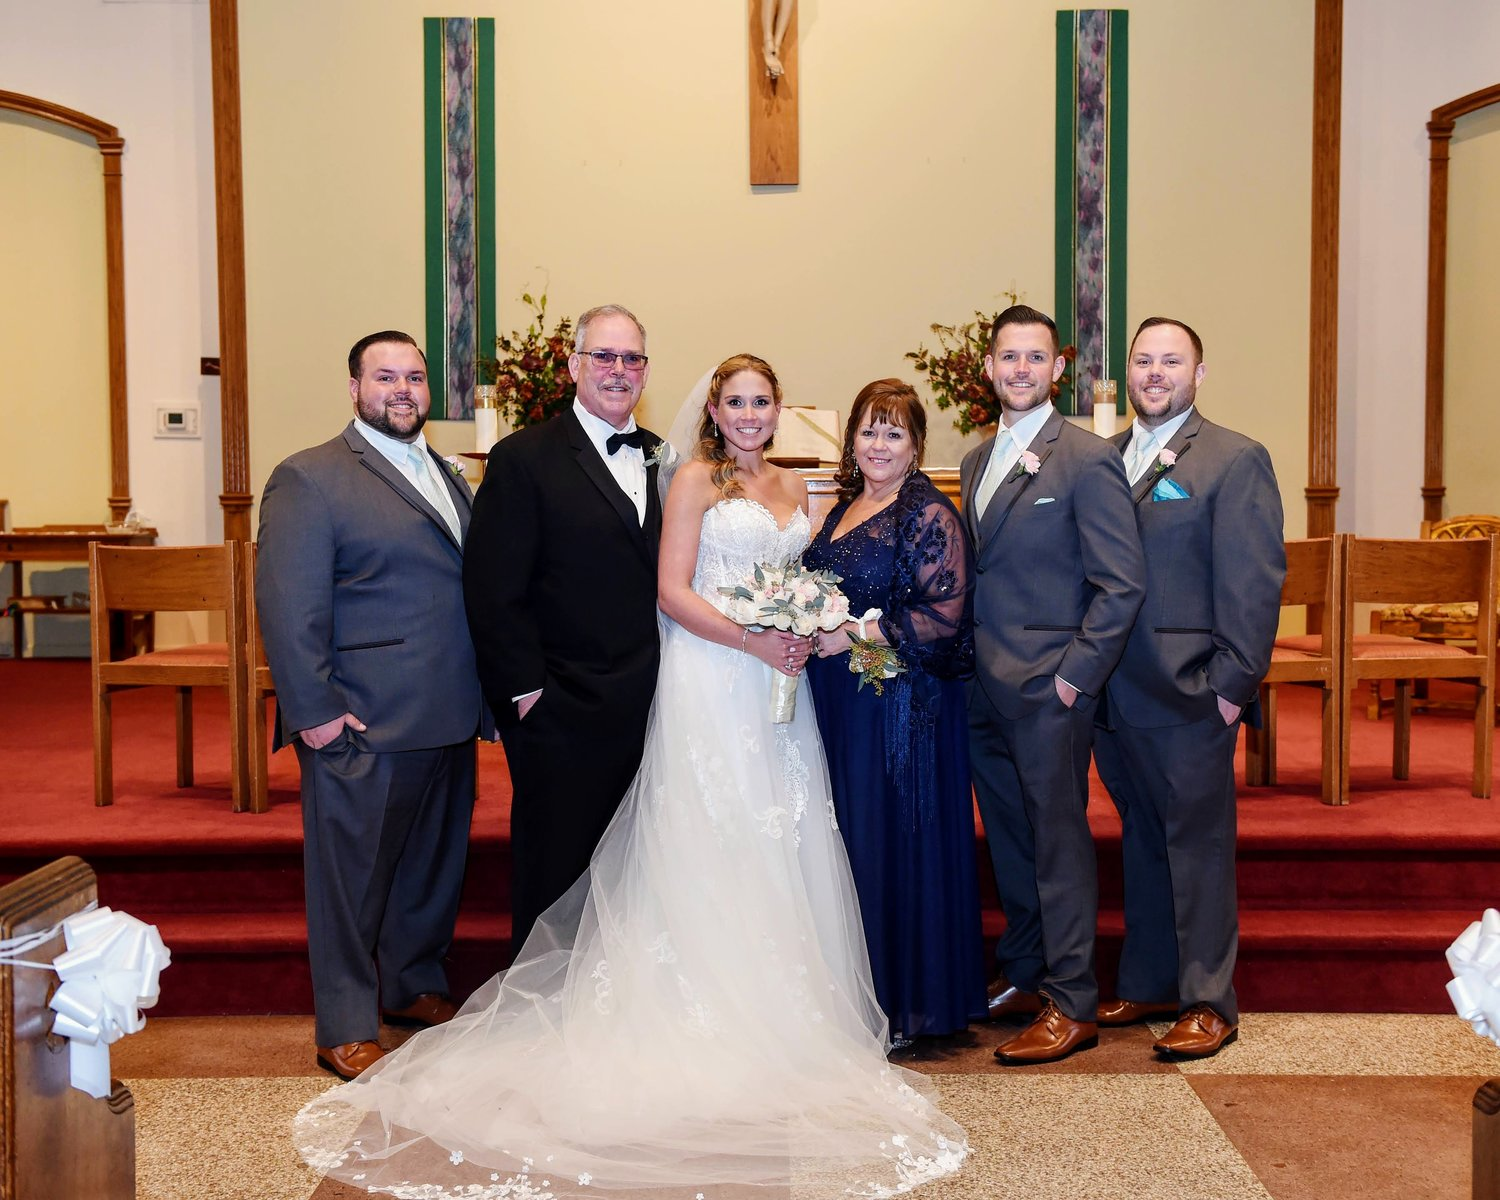 The Biens have volunteered in Lynbrook for many years. Above, Jamie on her wedding day with, from left, Dylen, Lawrence, Kathy, Kyle and Scott.